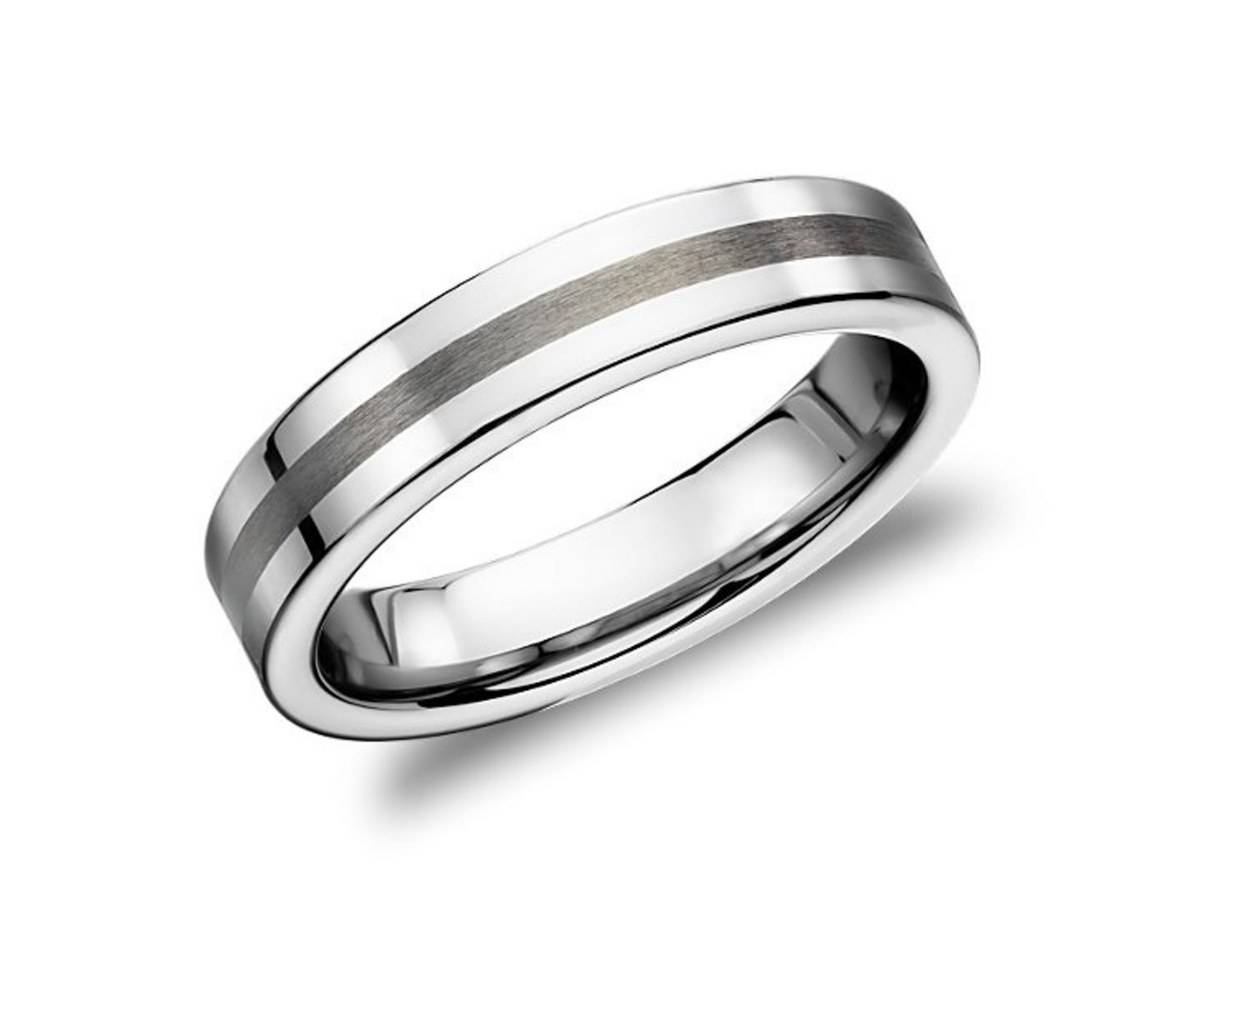 15 Men's Wedding Bands Your Groom Won't Want To Take Off | Glamour Inside Tiffany Wedding Bands For Men (View 1 of 15)